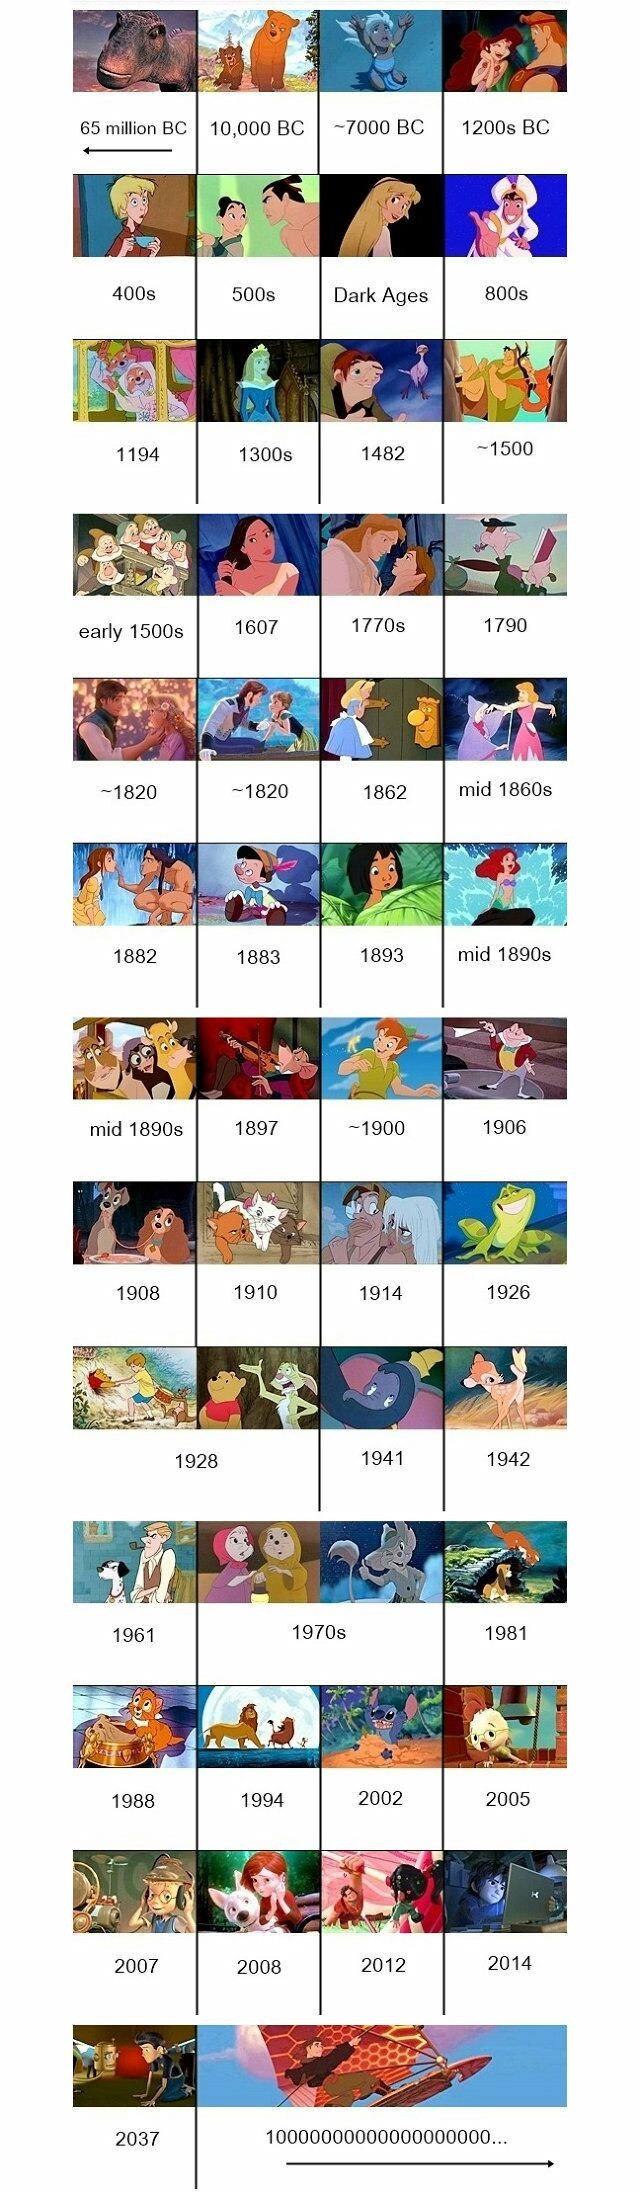 disney-movies-in-their-chronological-order